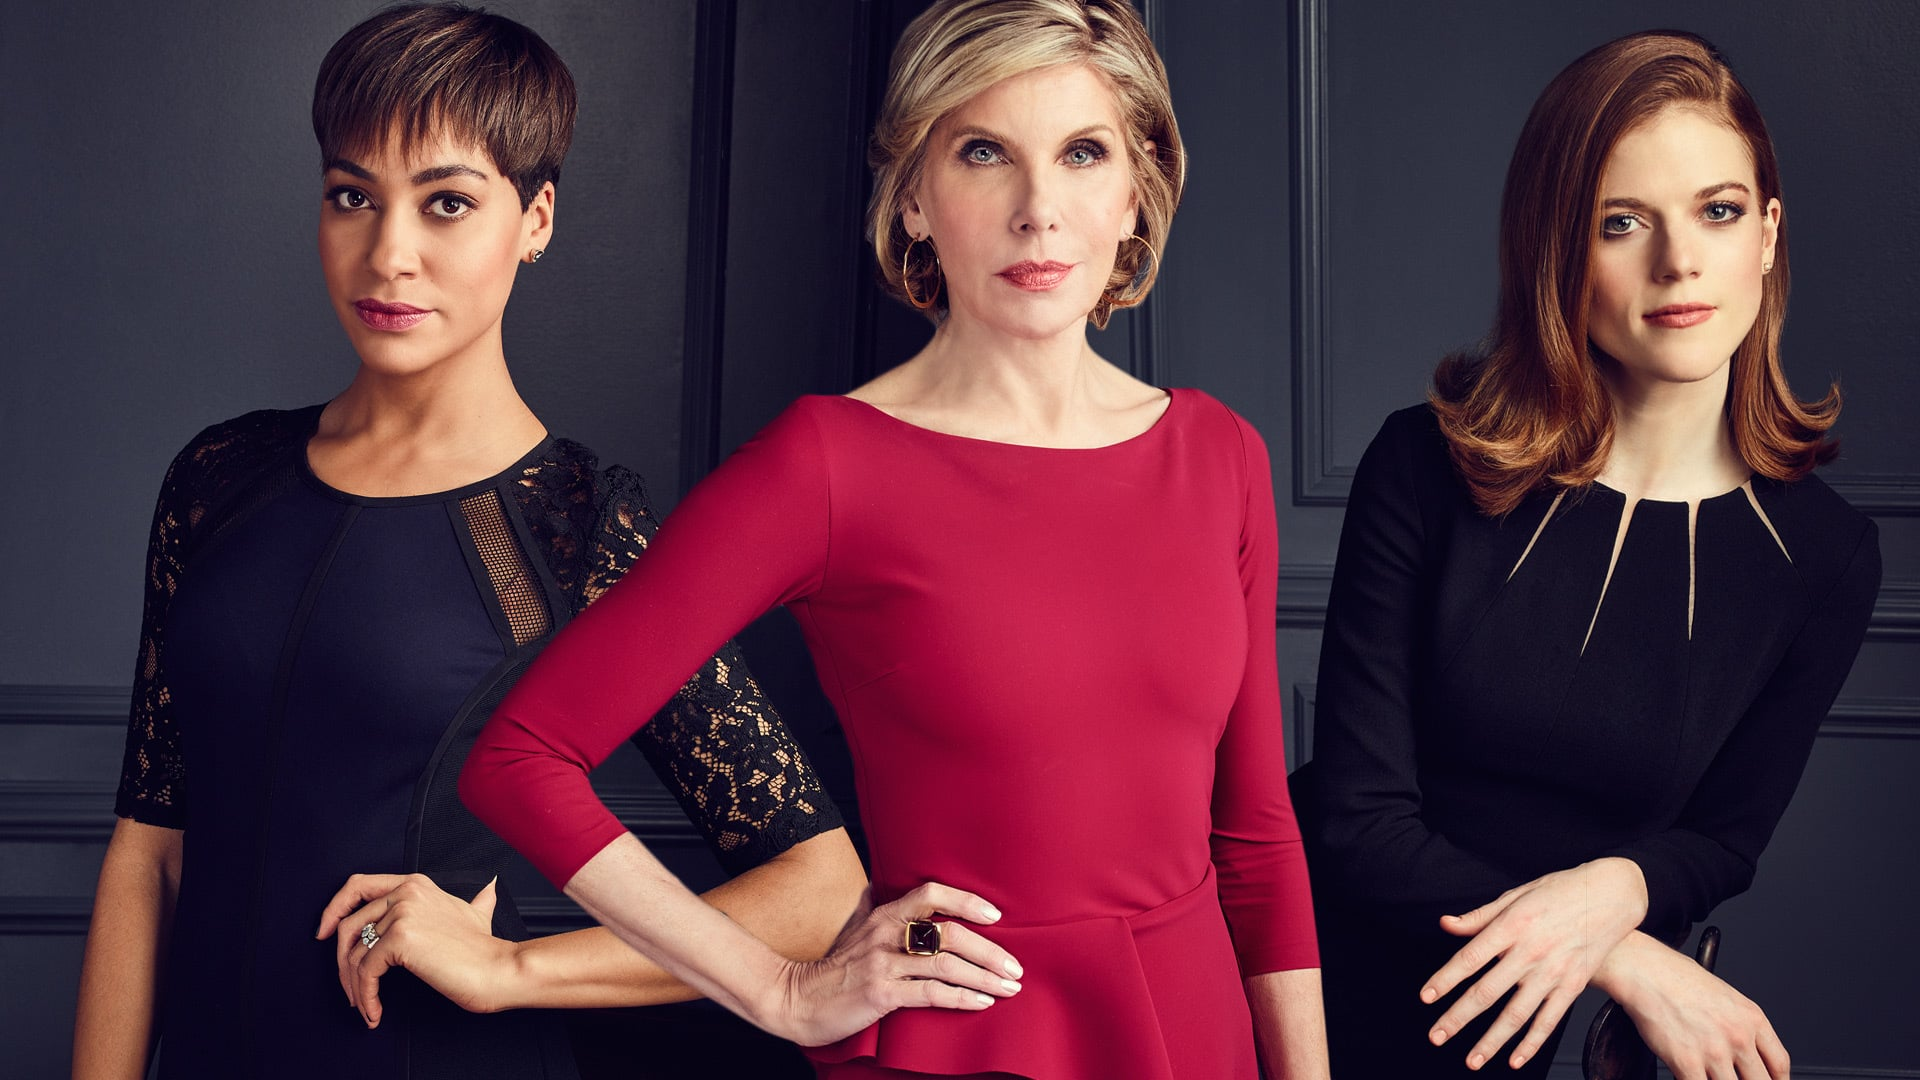 A promo shot for the good fight